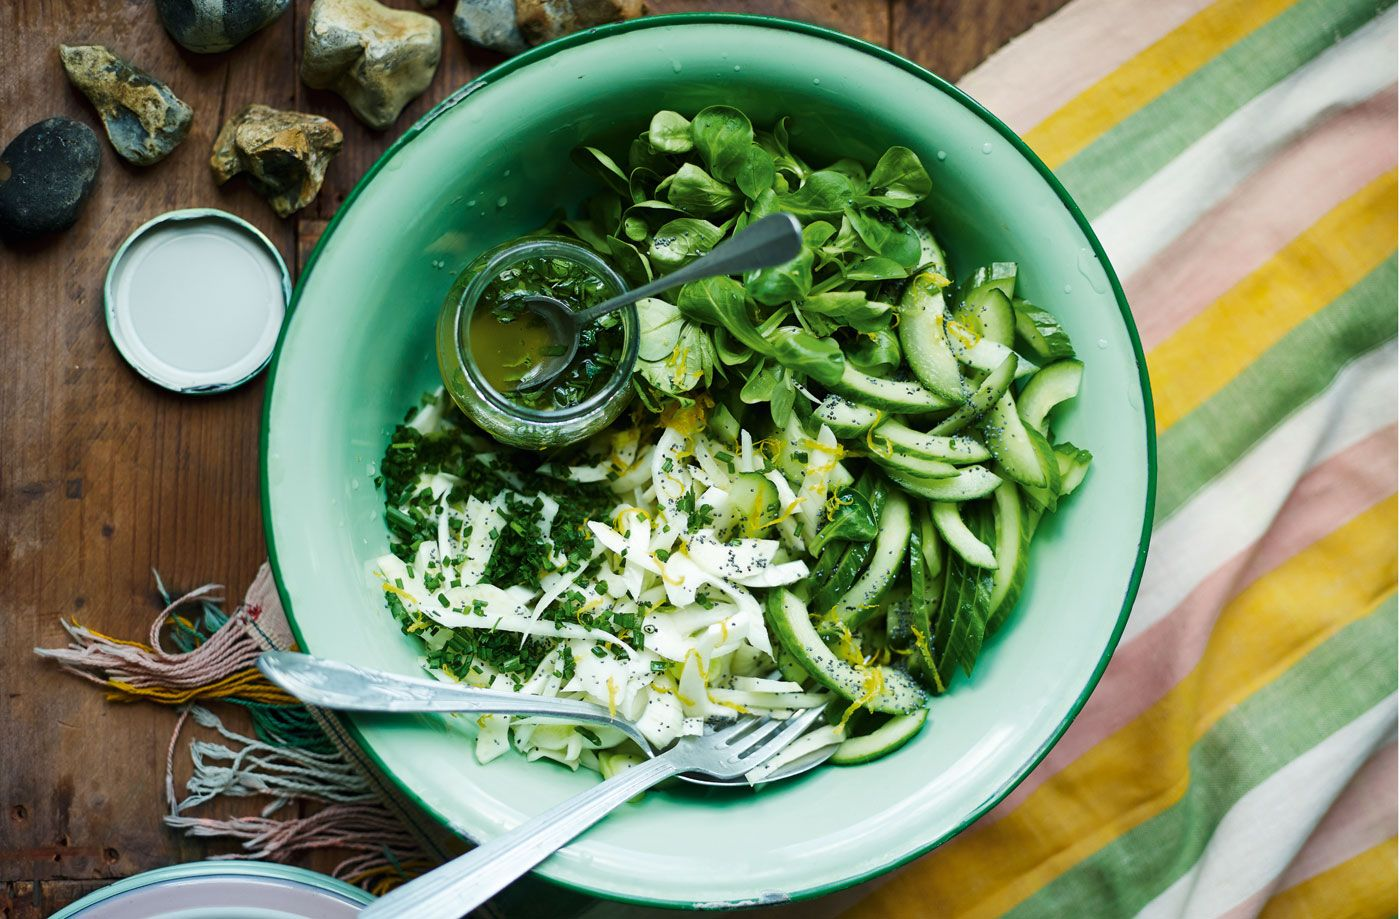 This fresh green salad of cucumber, fennel & parsley makes the perfect BBQ side. Discover more inspirational salad recipes & BBQ sides…